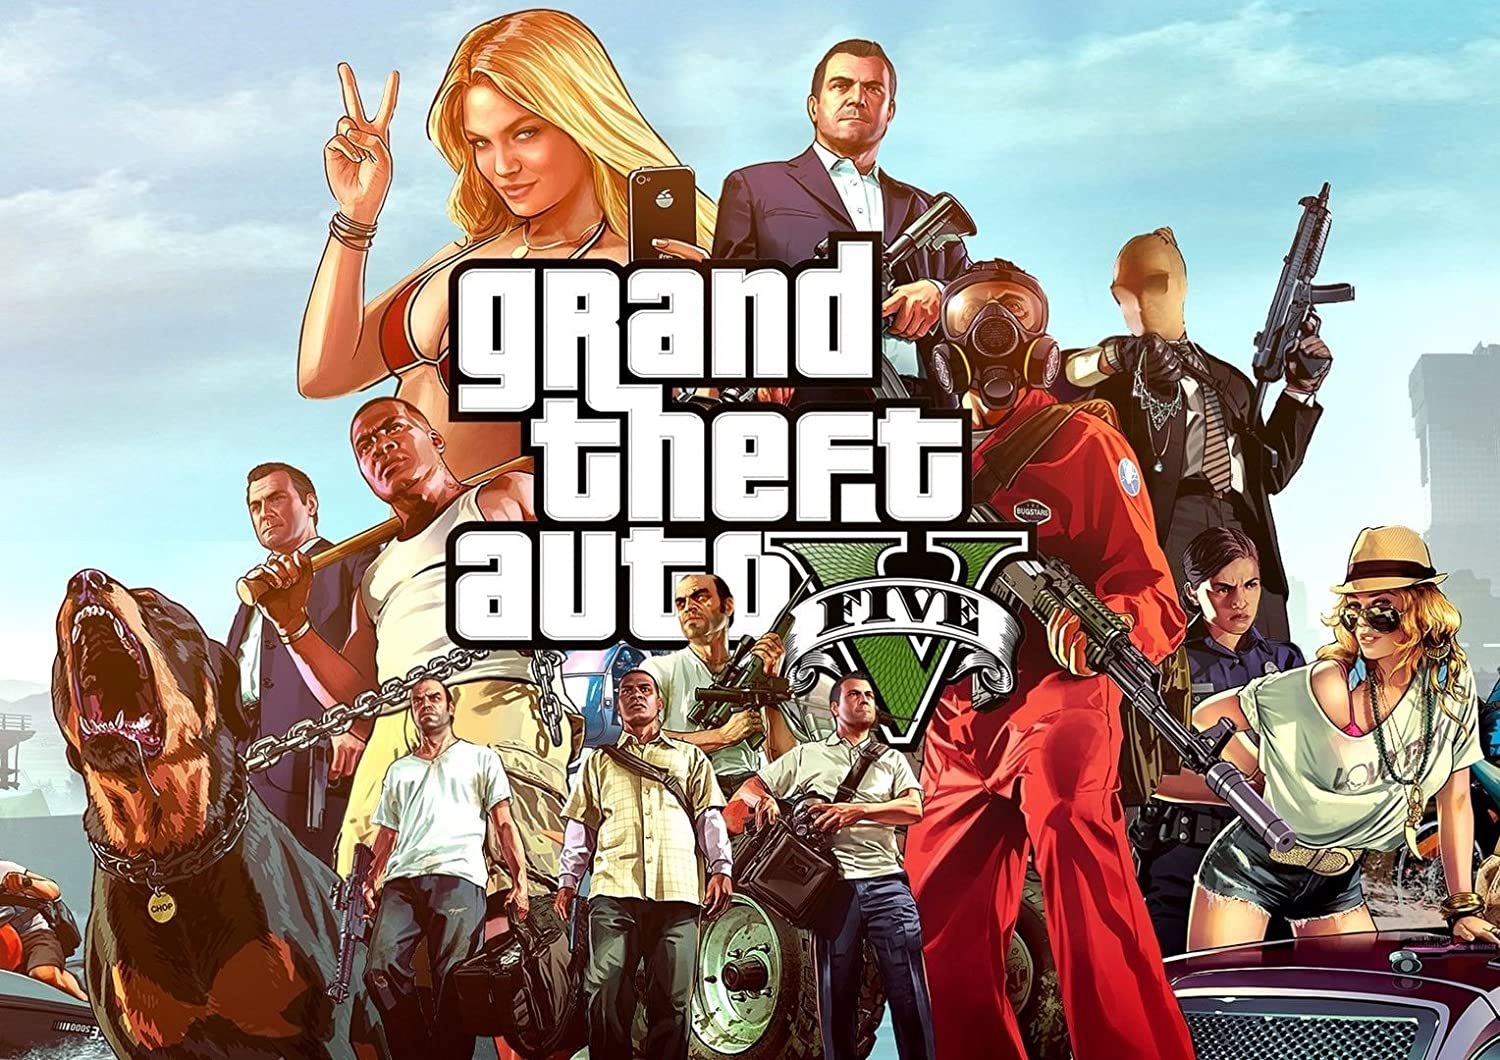 Grand Theft AUTO 5 GTA 5 GTA V Game Poster Photo Print Art A2 A3 A4 Various A3 (42 x 29.7 cm) (GTA Characters) : Amazon.co.uk: Home & Kitchen